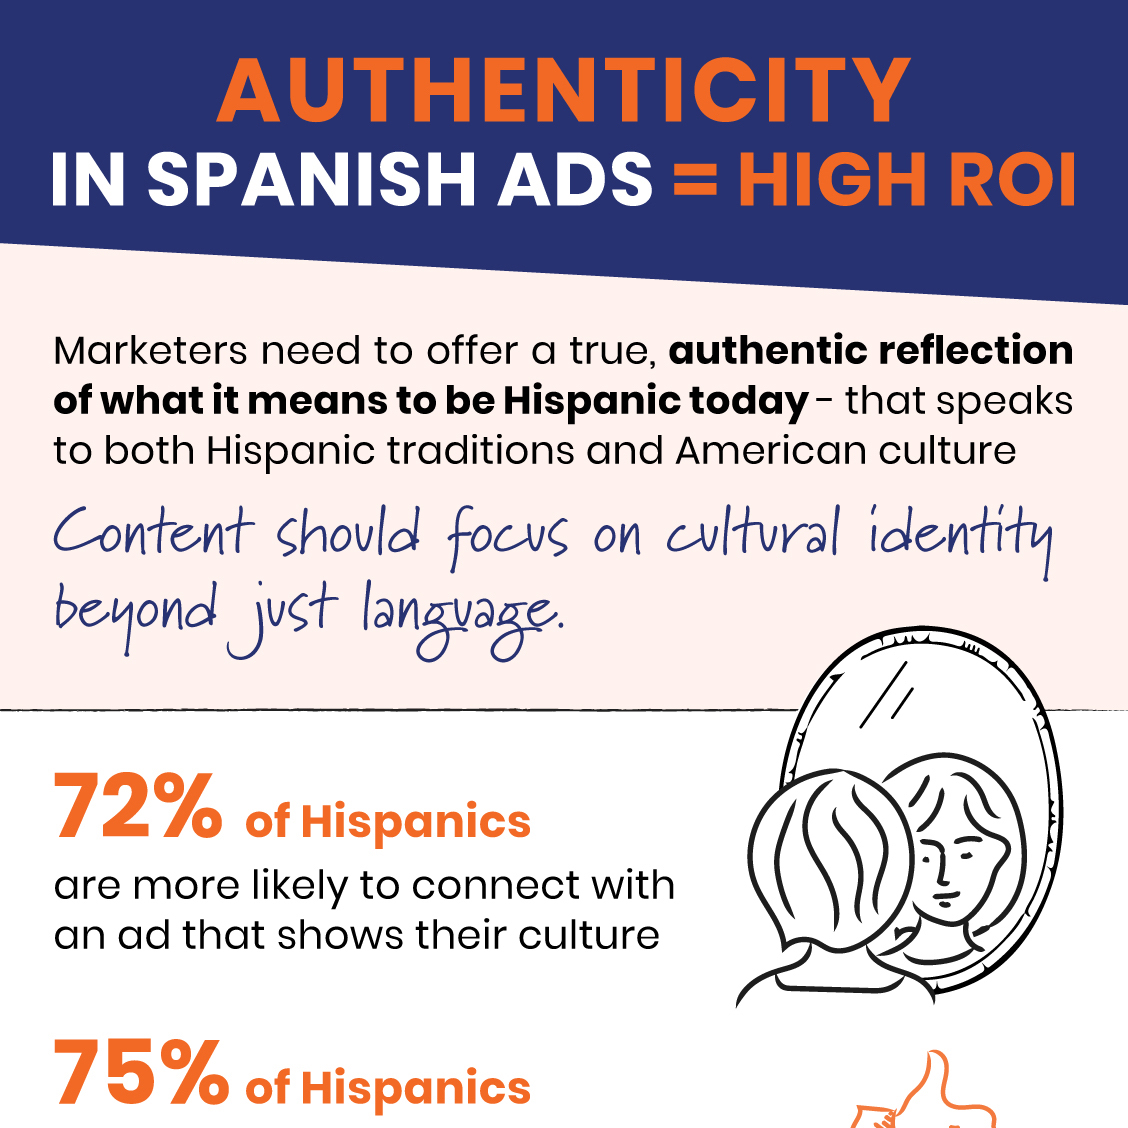 Authenticity in Spanish Ads